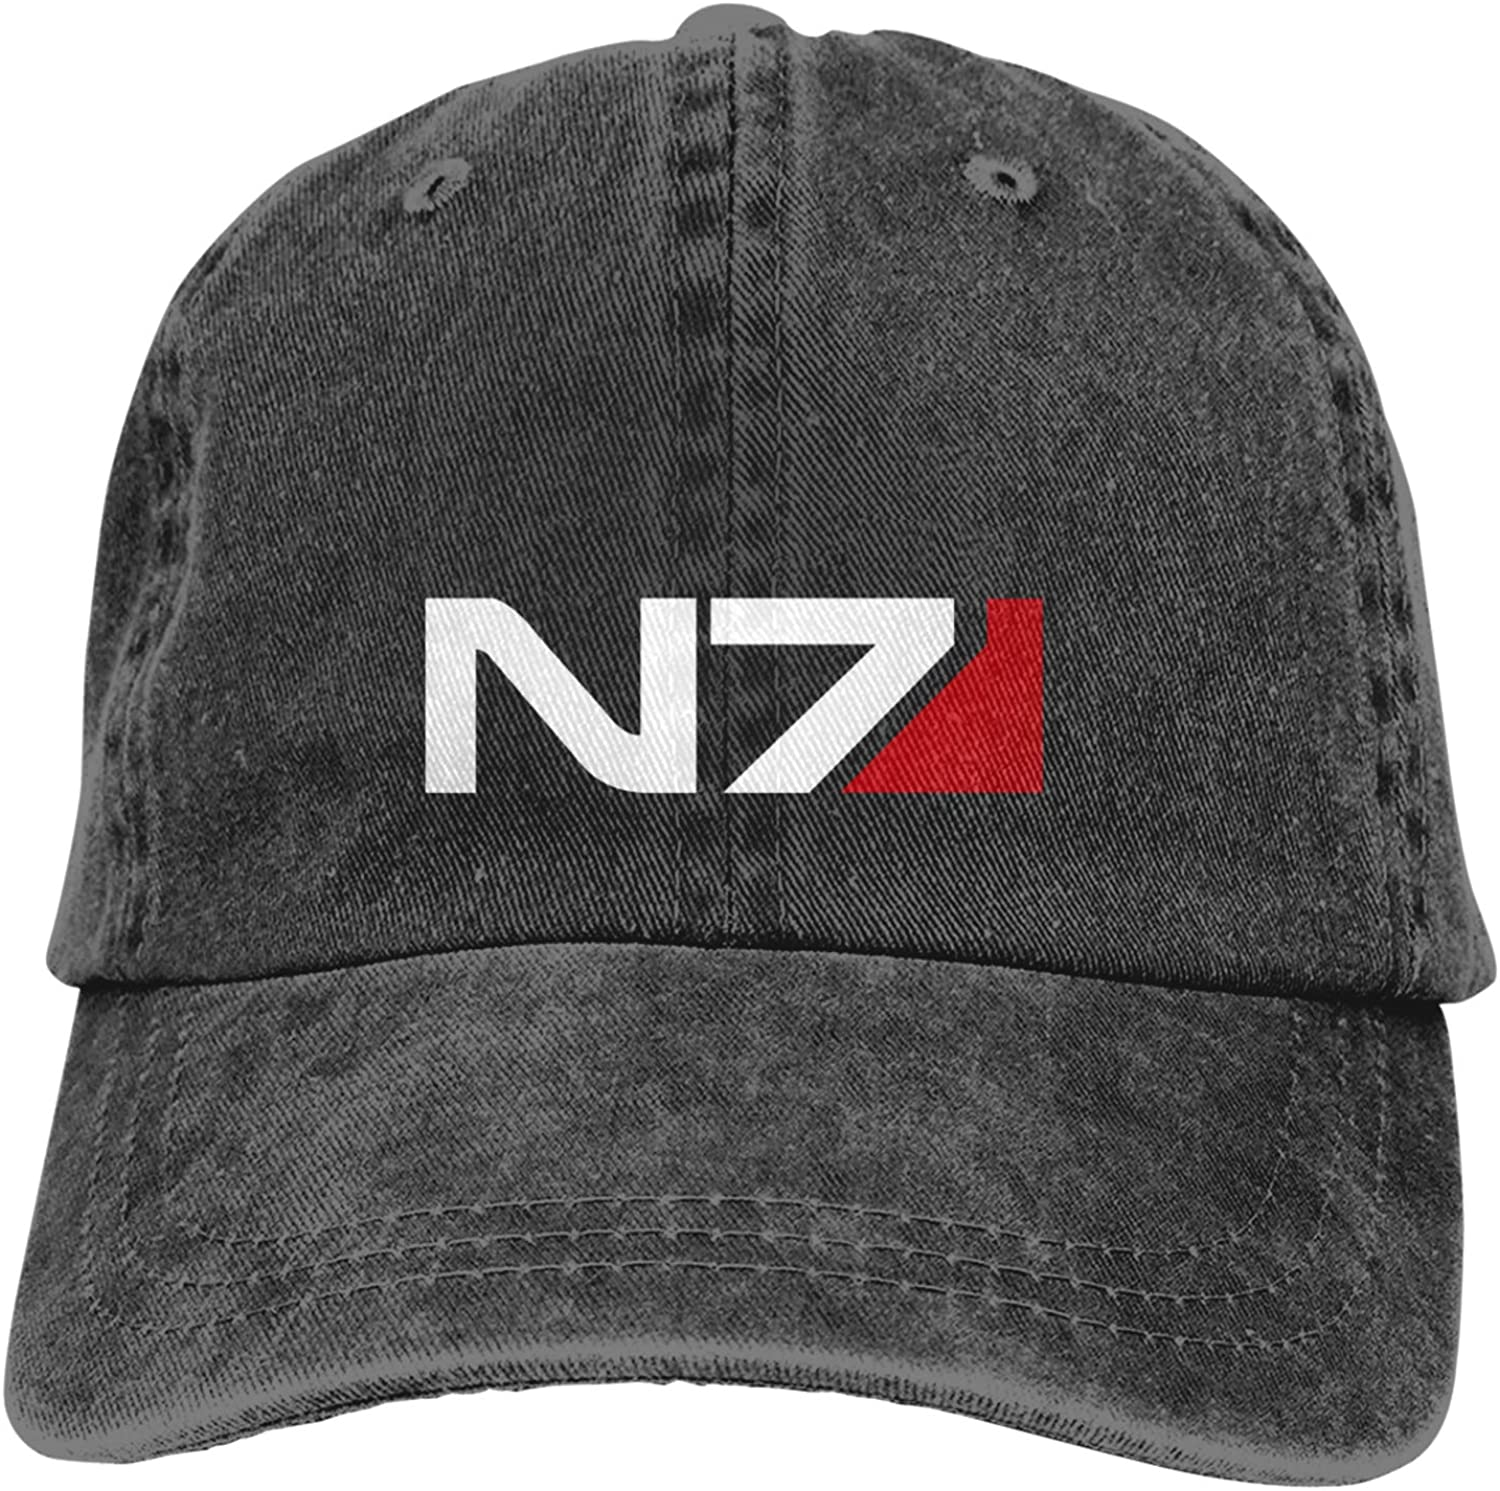 Booottty Mass Effect Alliance N7 Special Forces Adjustable Retro Baseball Cap Trucker Hat Novelty Dad Hat for Mens Womens